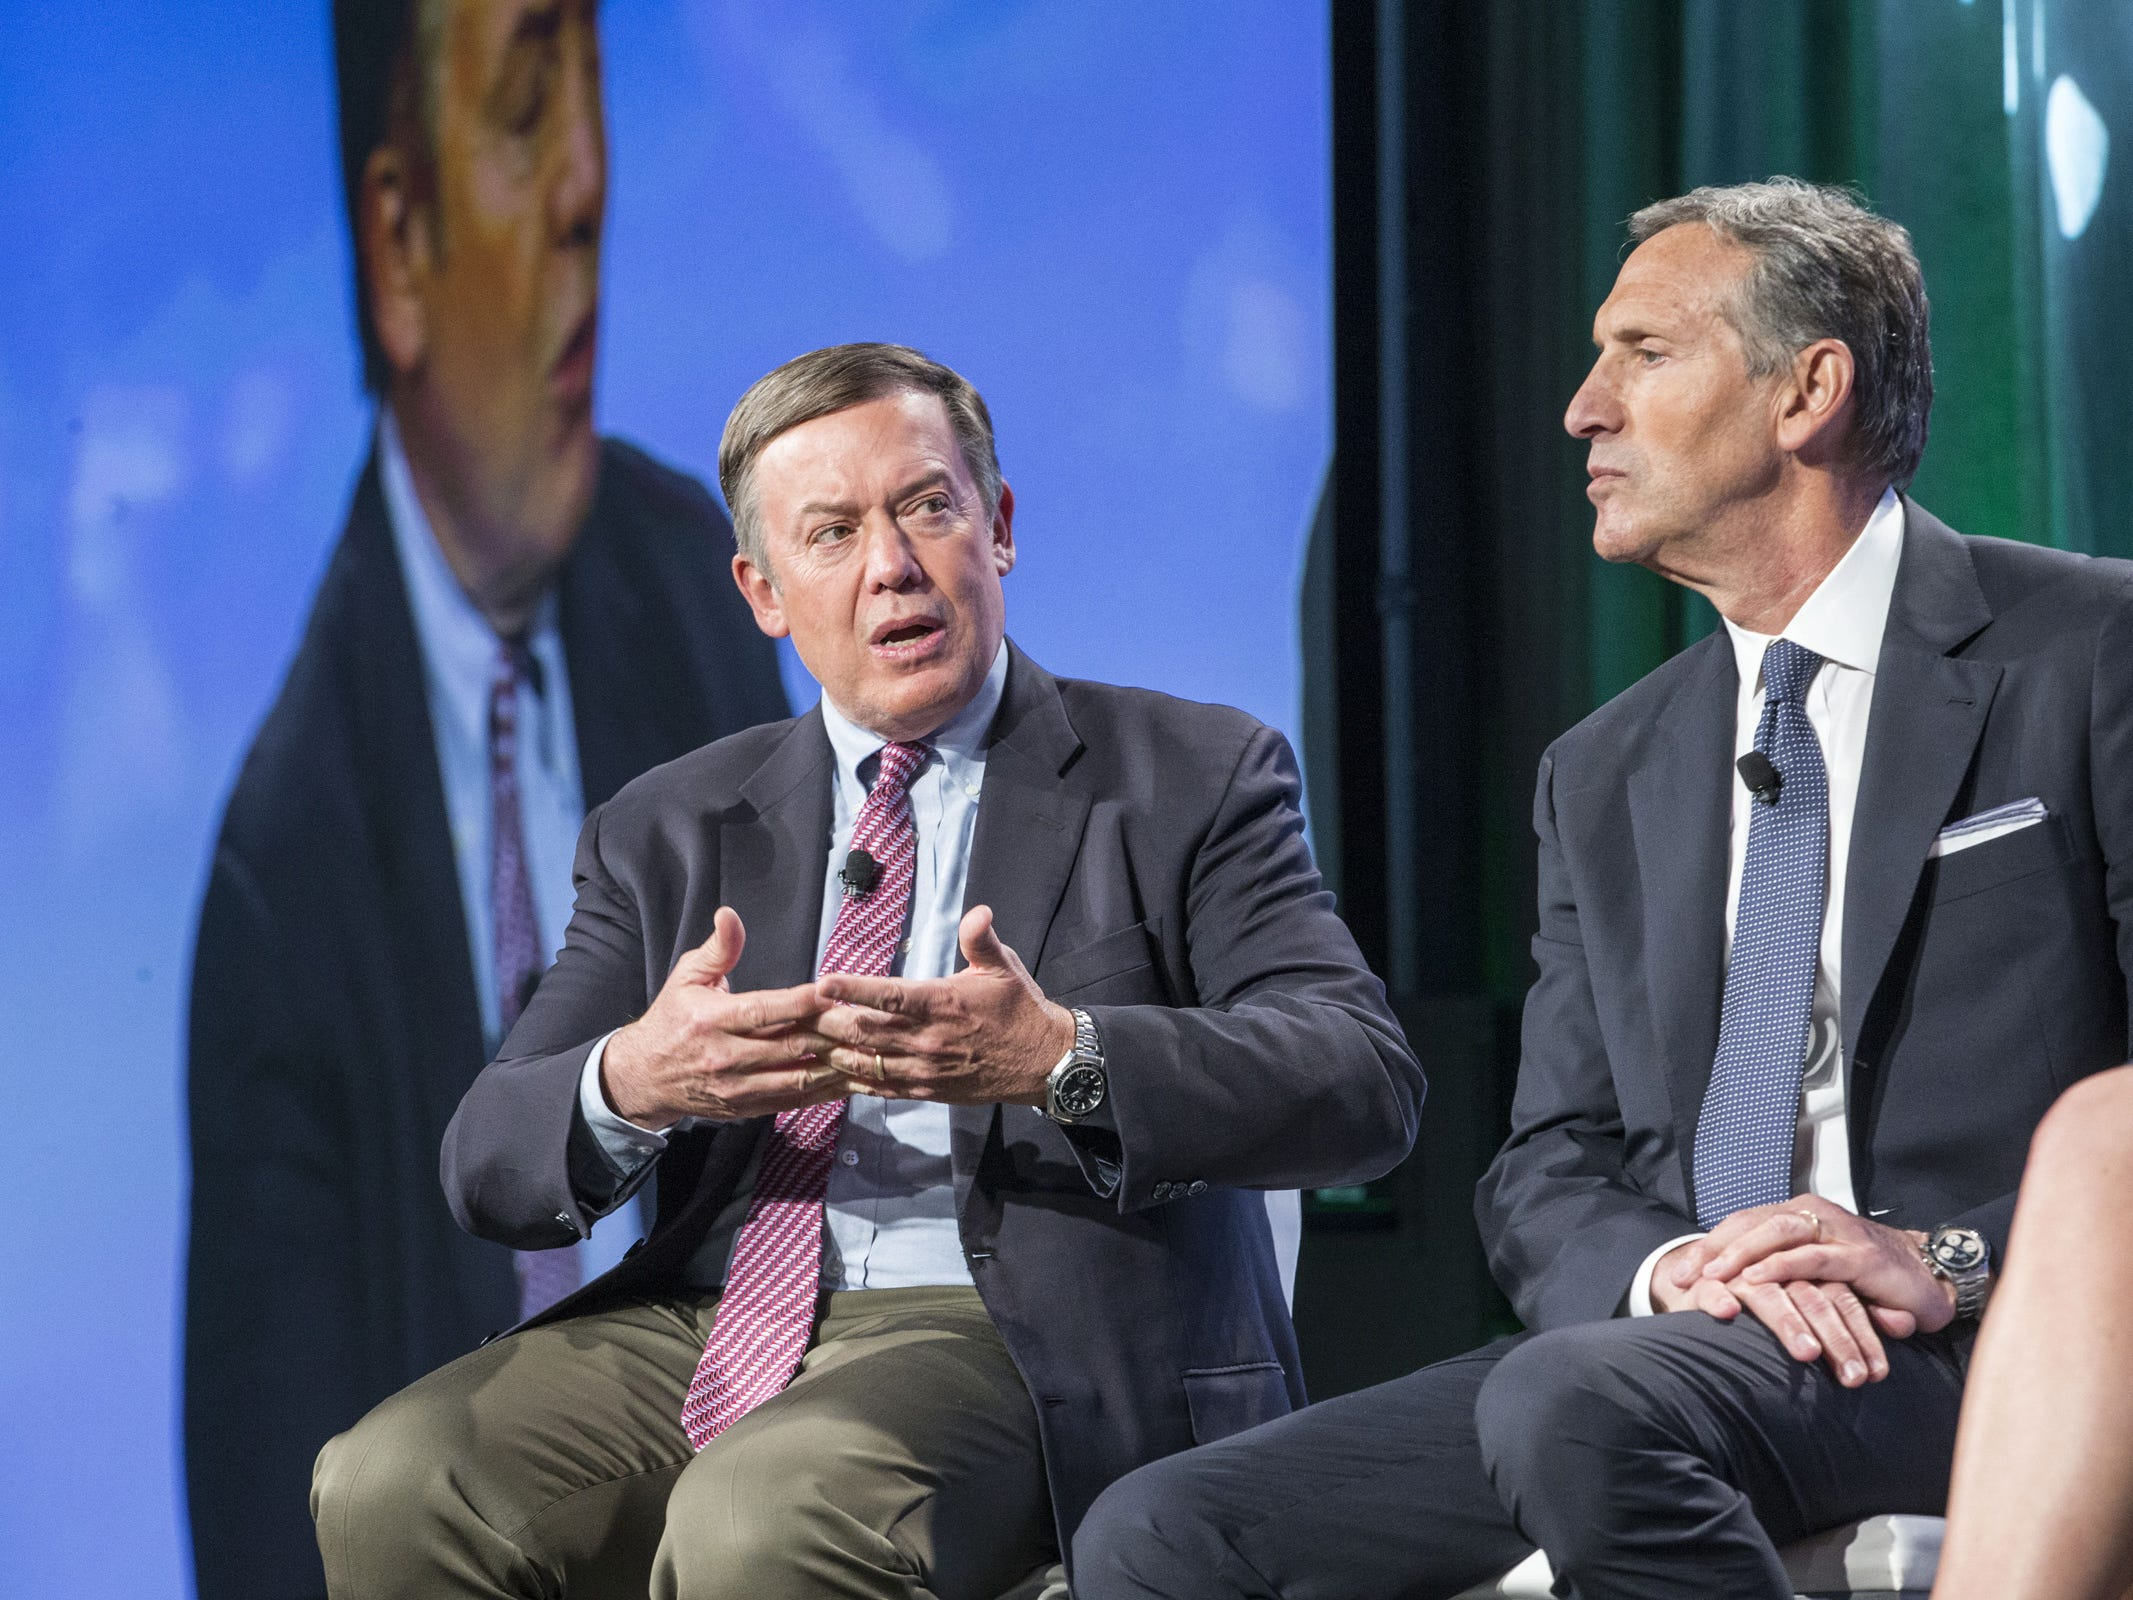 ASU President Michael Crow (left) discusses the expansion of an education partnership with former Starbucks Chairman and CEO Howard Schultz during a 2015 learning innovations conference. The partnership gives Starbucks employees free tuition reimbursement for taking online classes through ASU.